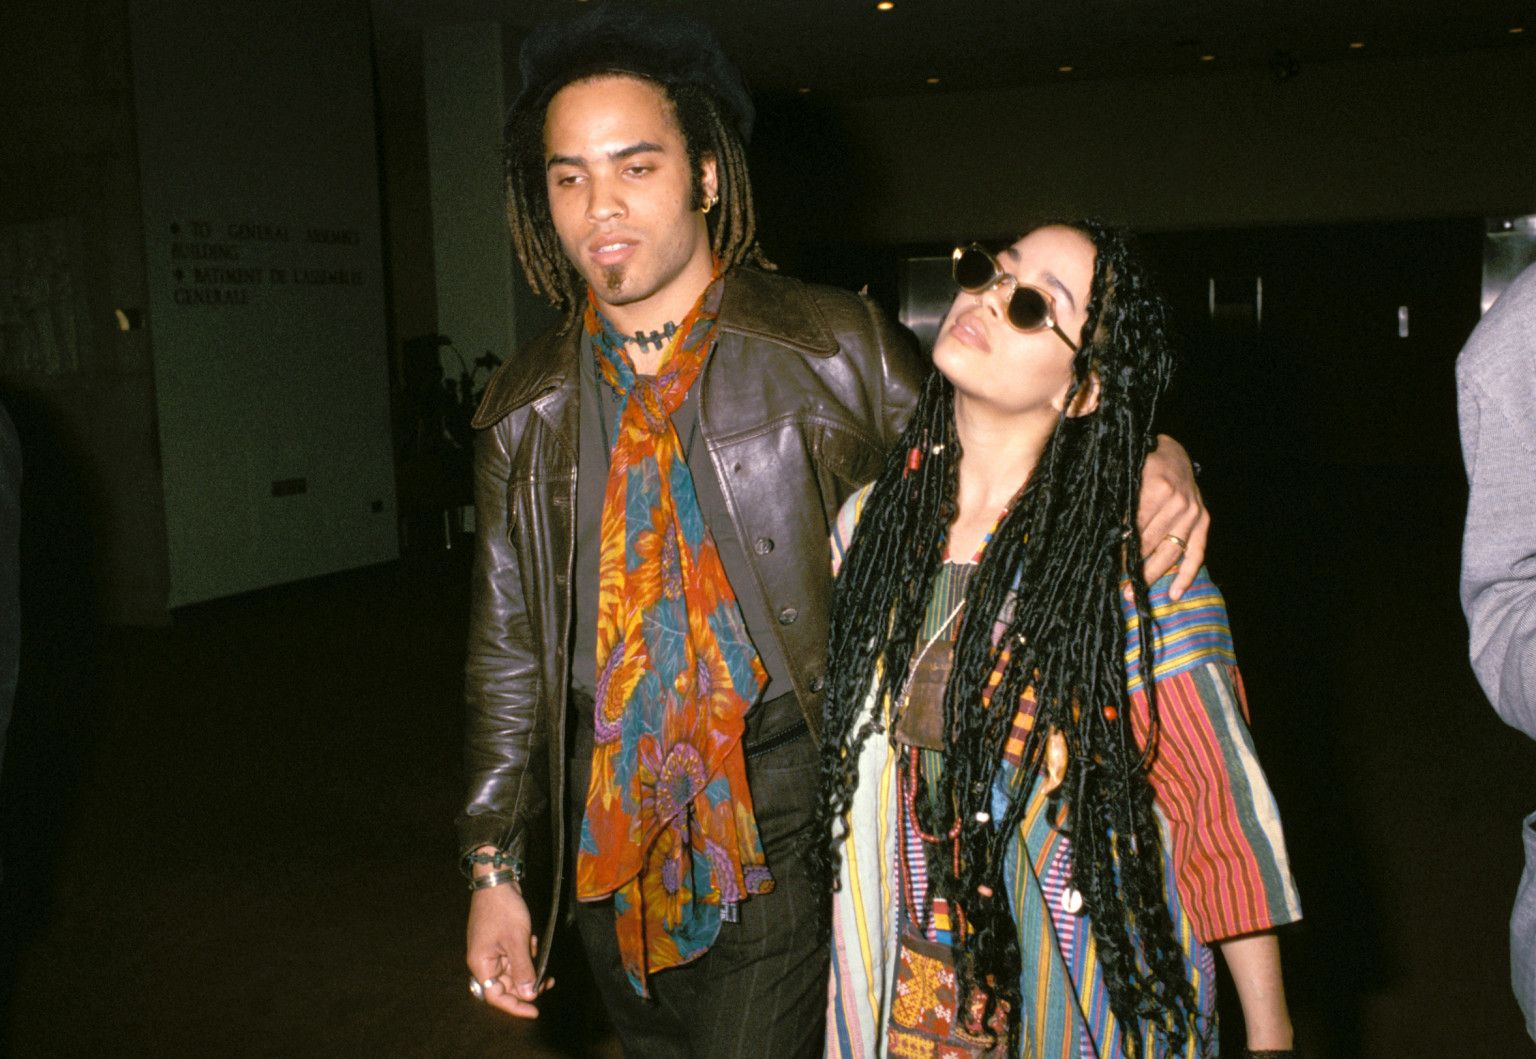 Lenny kravitz pants tear bing images - Fuckyeahkravitzfamily Lenny Kravitz Lisa Bonet Shortly Before Zoe Was Born Natural Hair Upkeep Pinterest Lisa Bonet Lenny Kravitz And Woman Crush